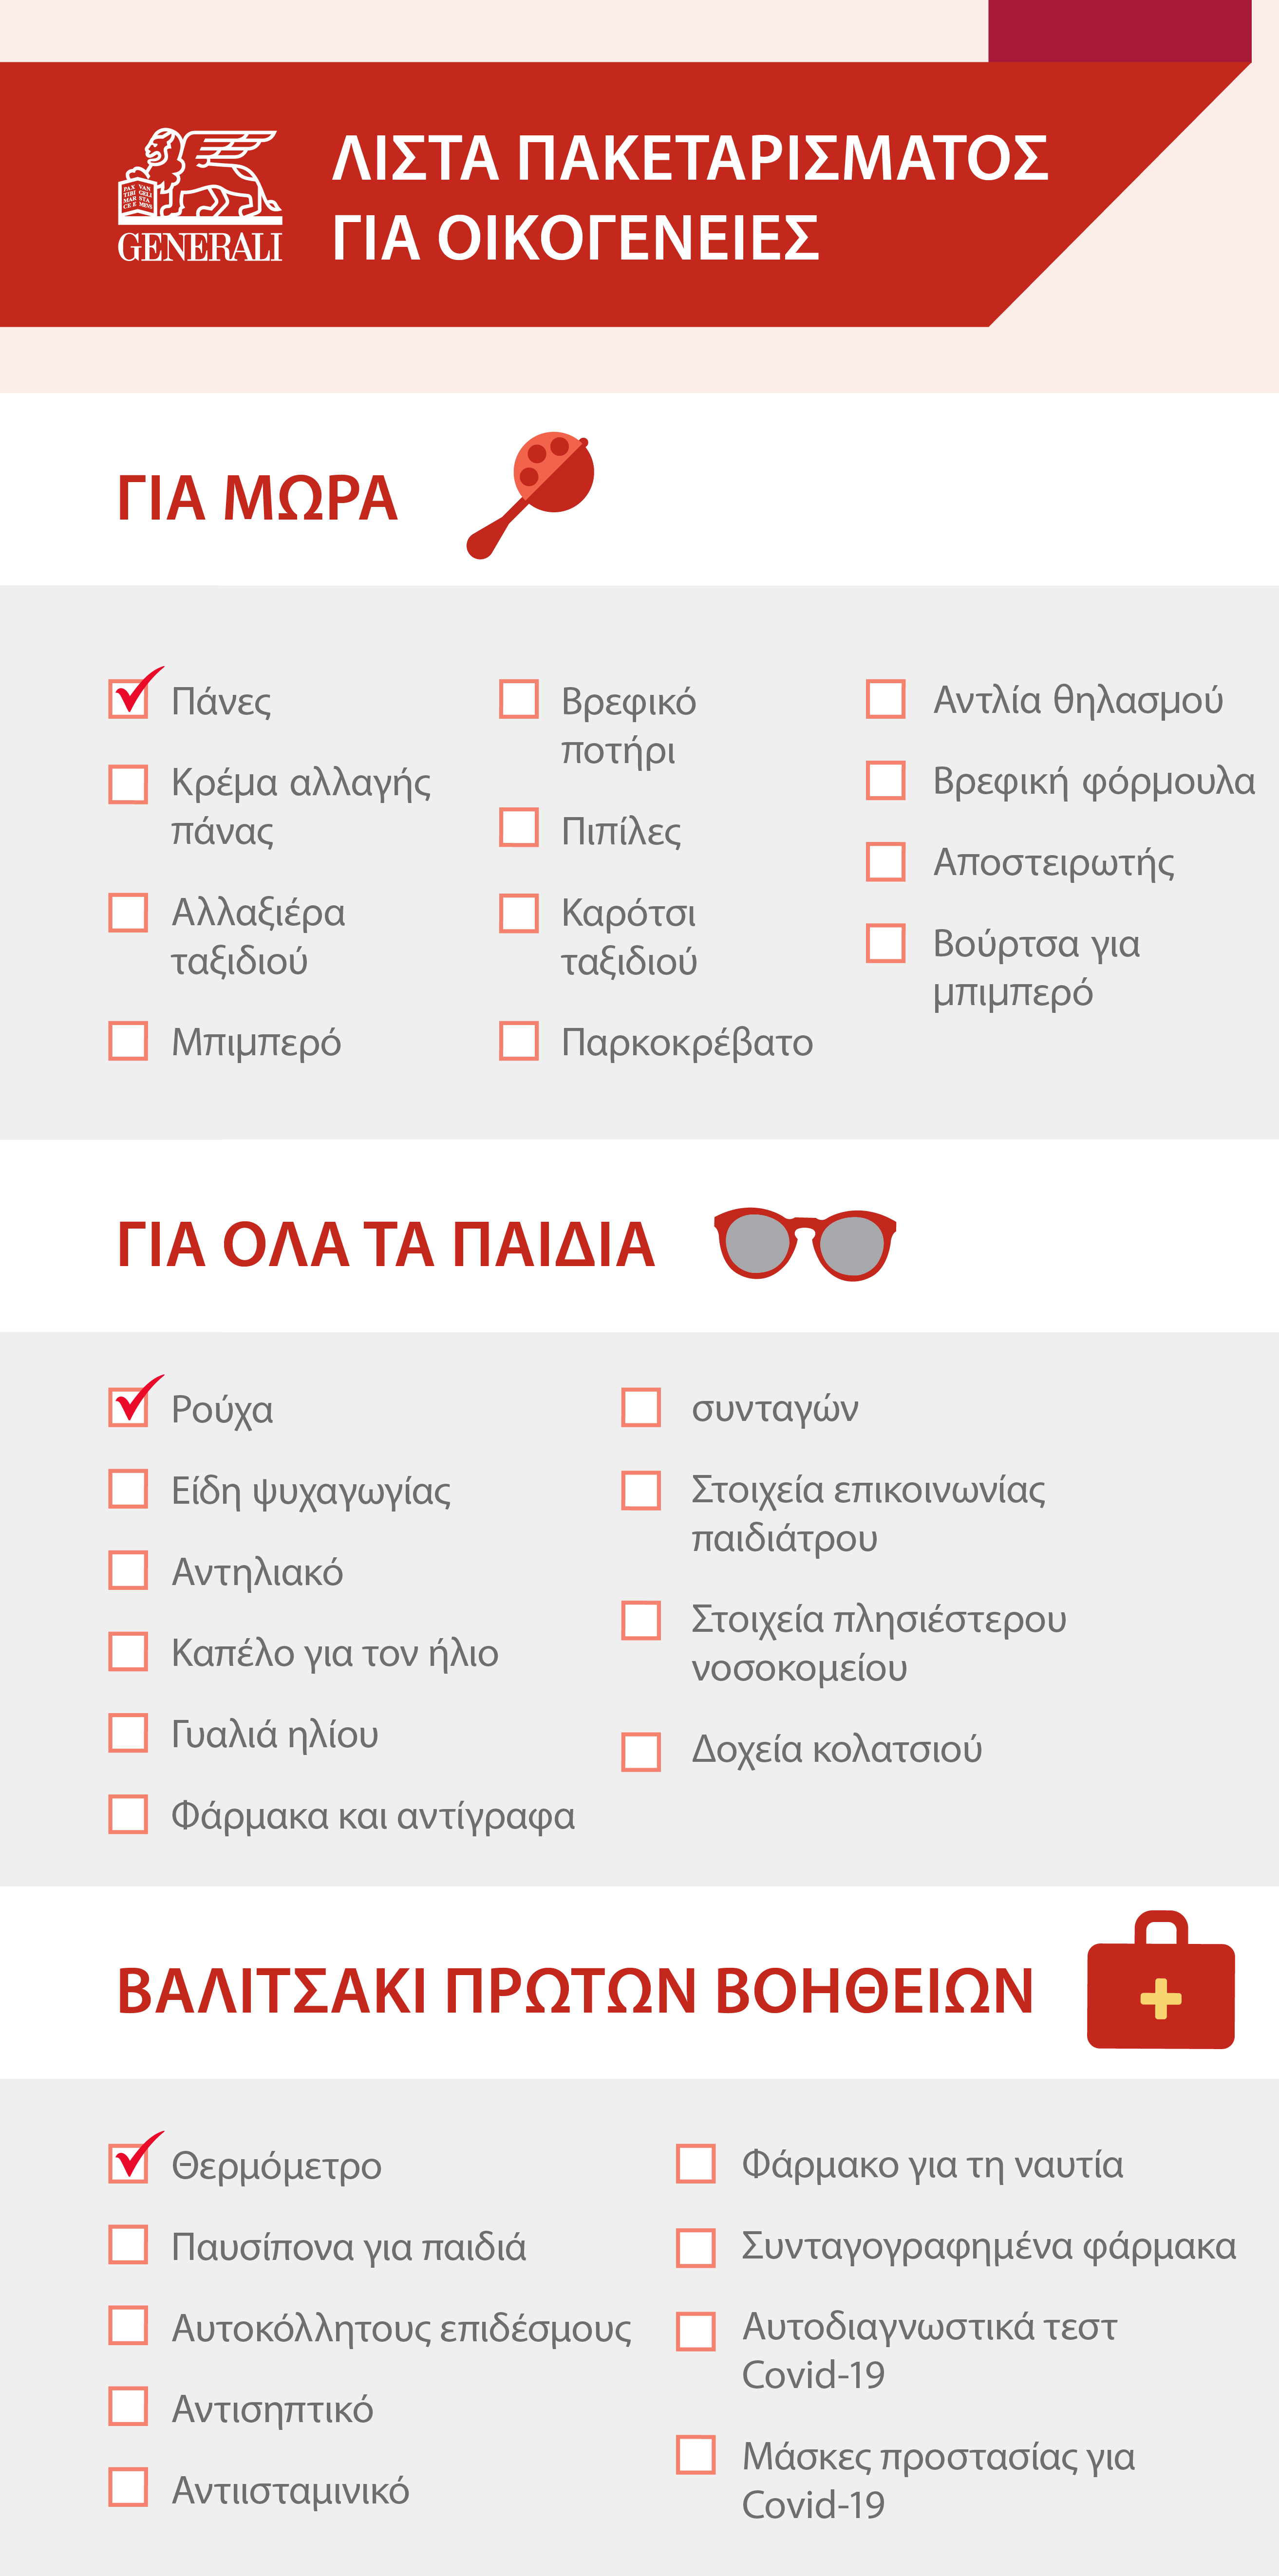 How_to_pack_for_holidays_with_kids_greece_v1_7.1.21-01 (1).png